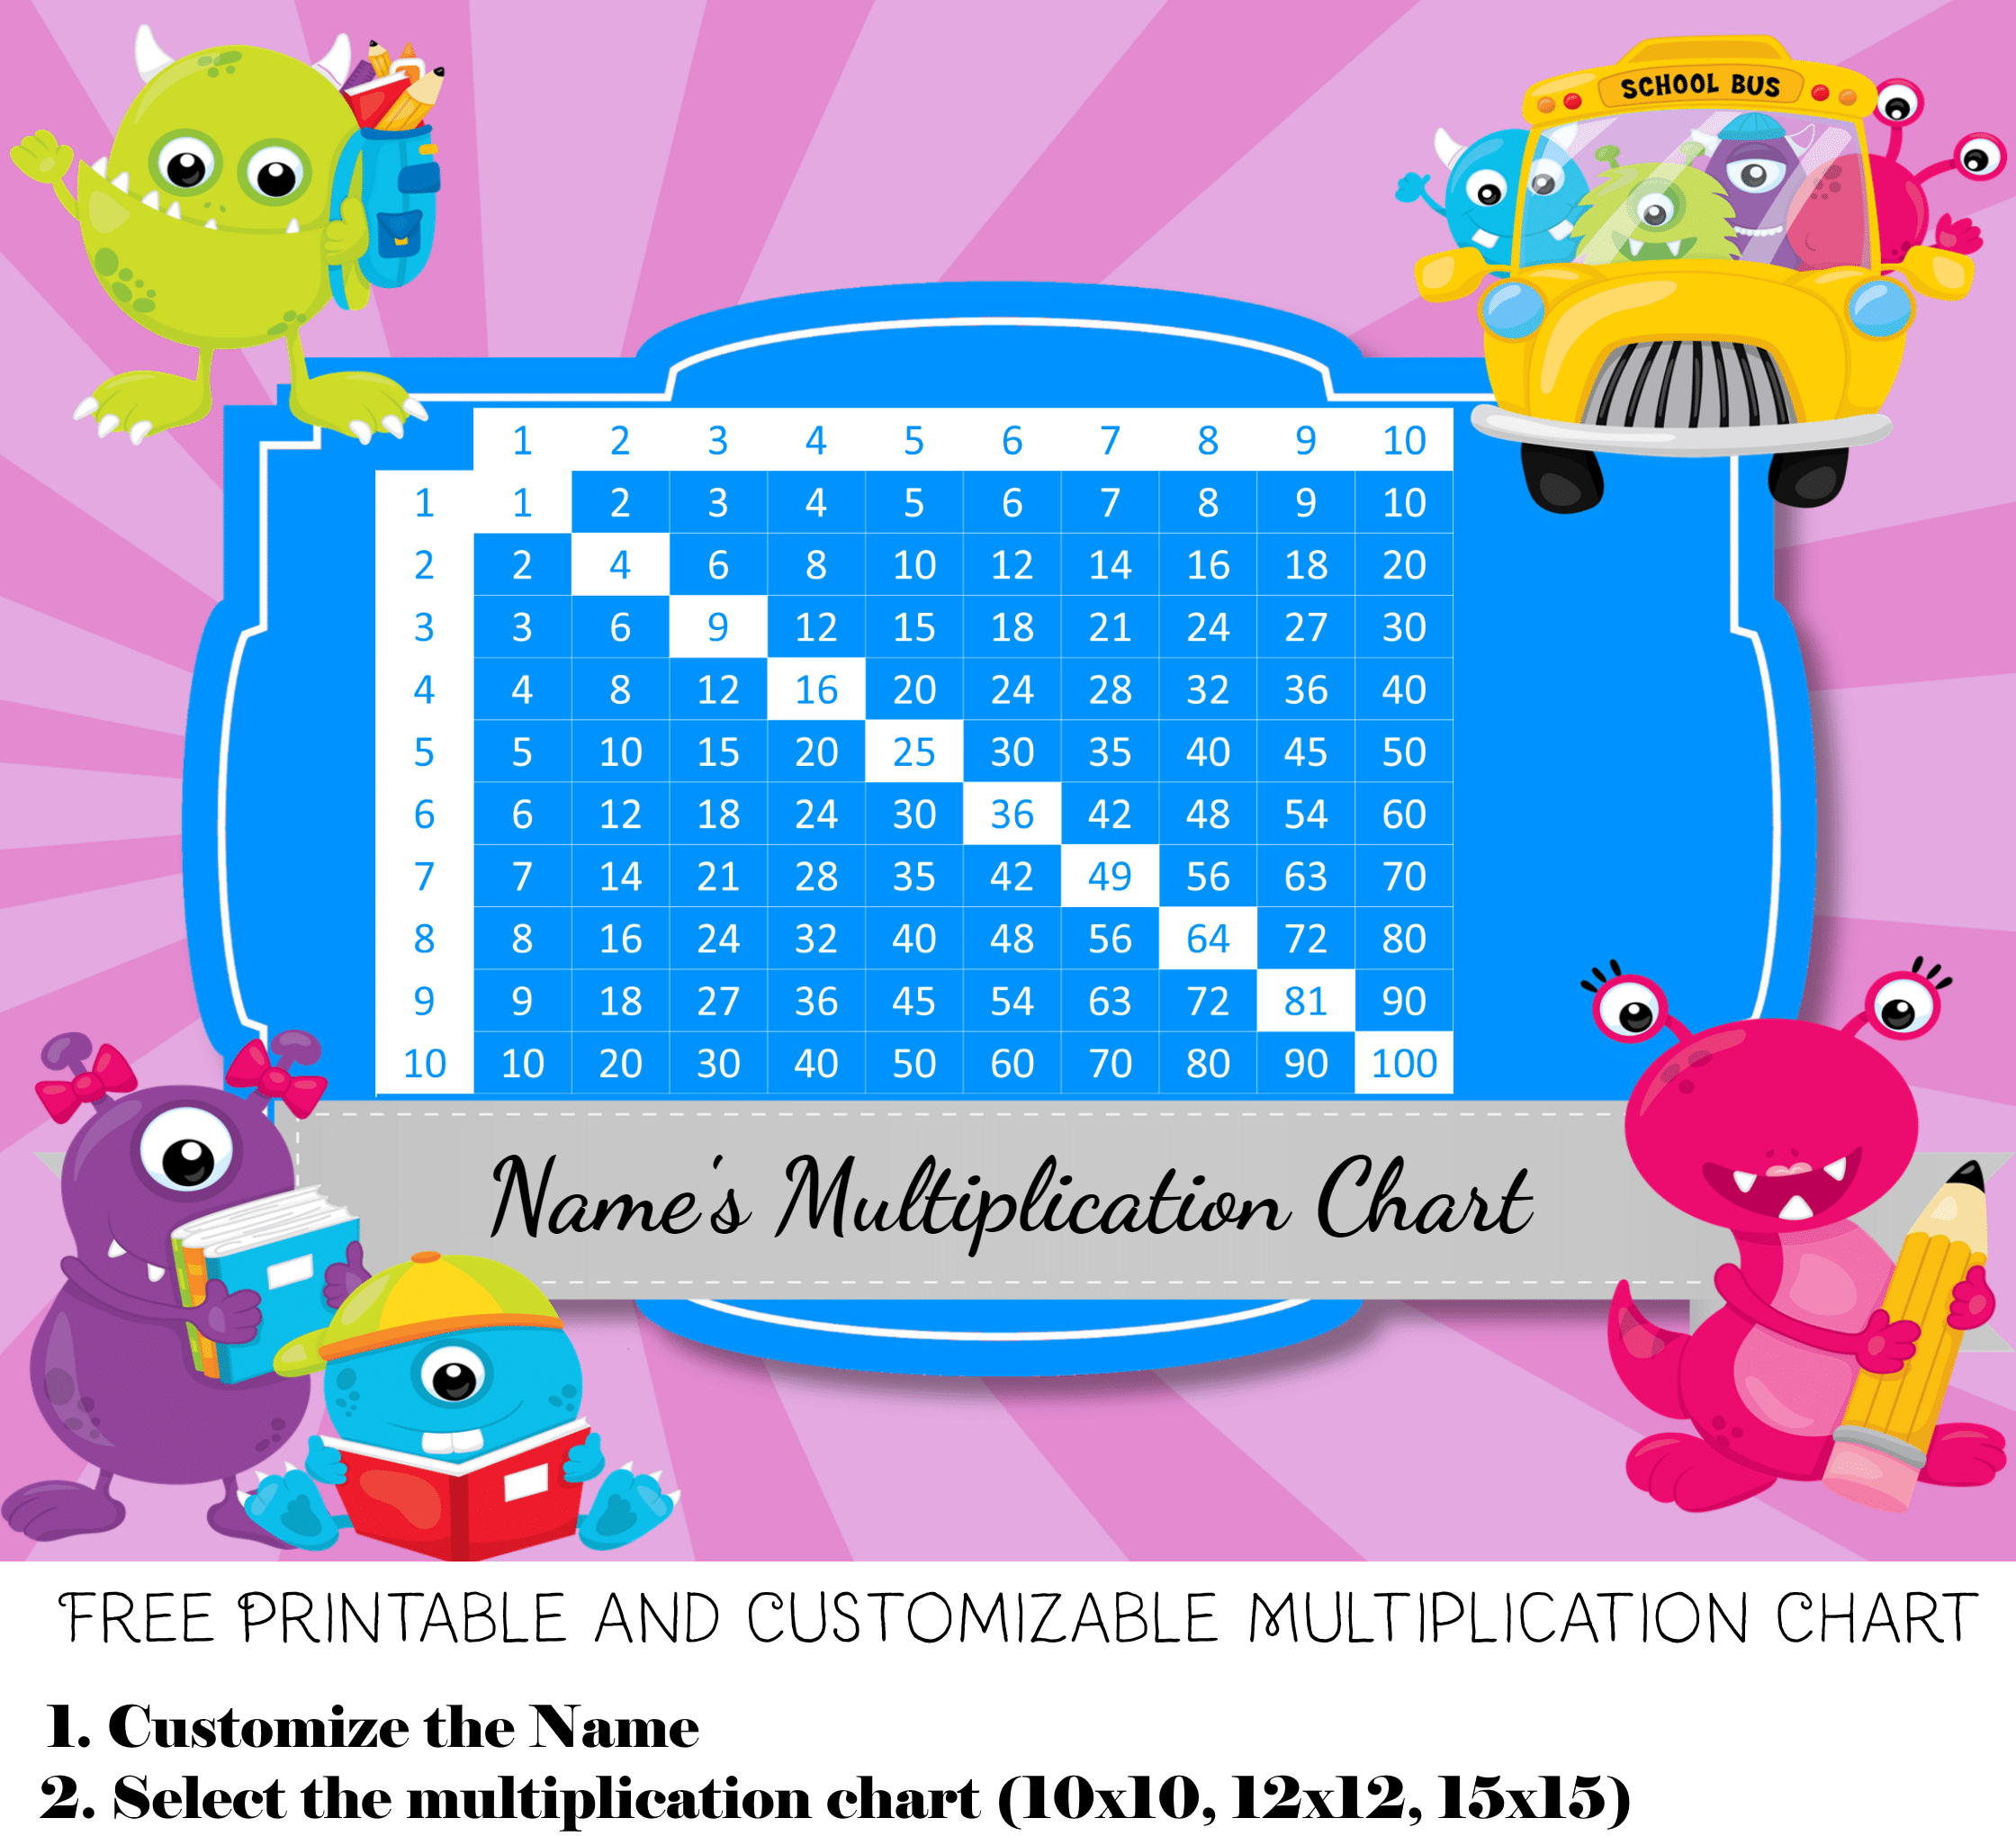 15X15 Multiplication Chart - Vatan.vtngcf within Printable 15X15 Multiplication Chart